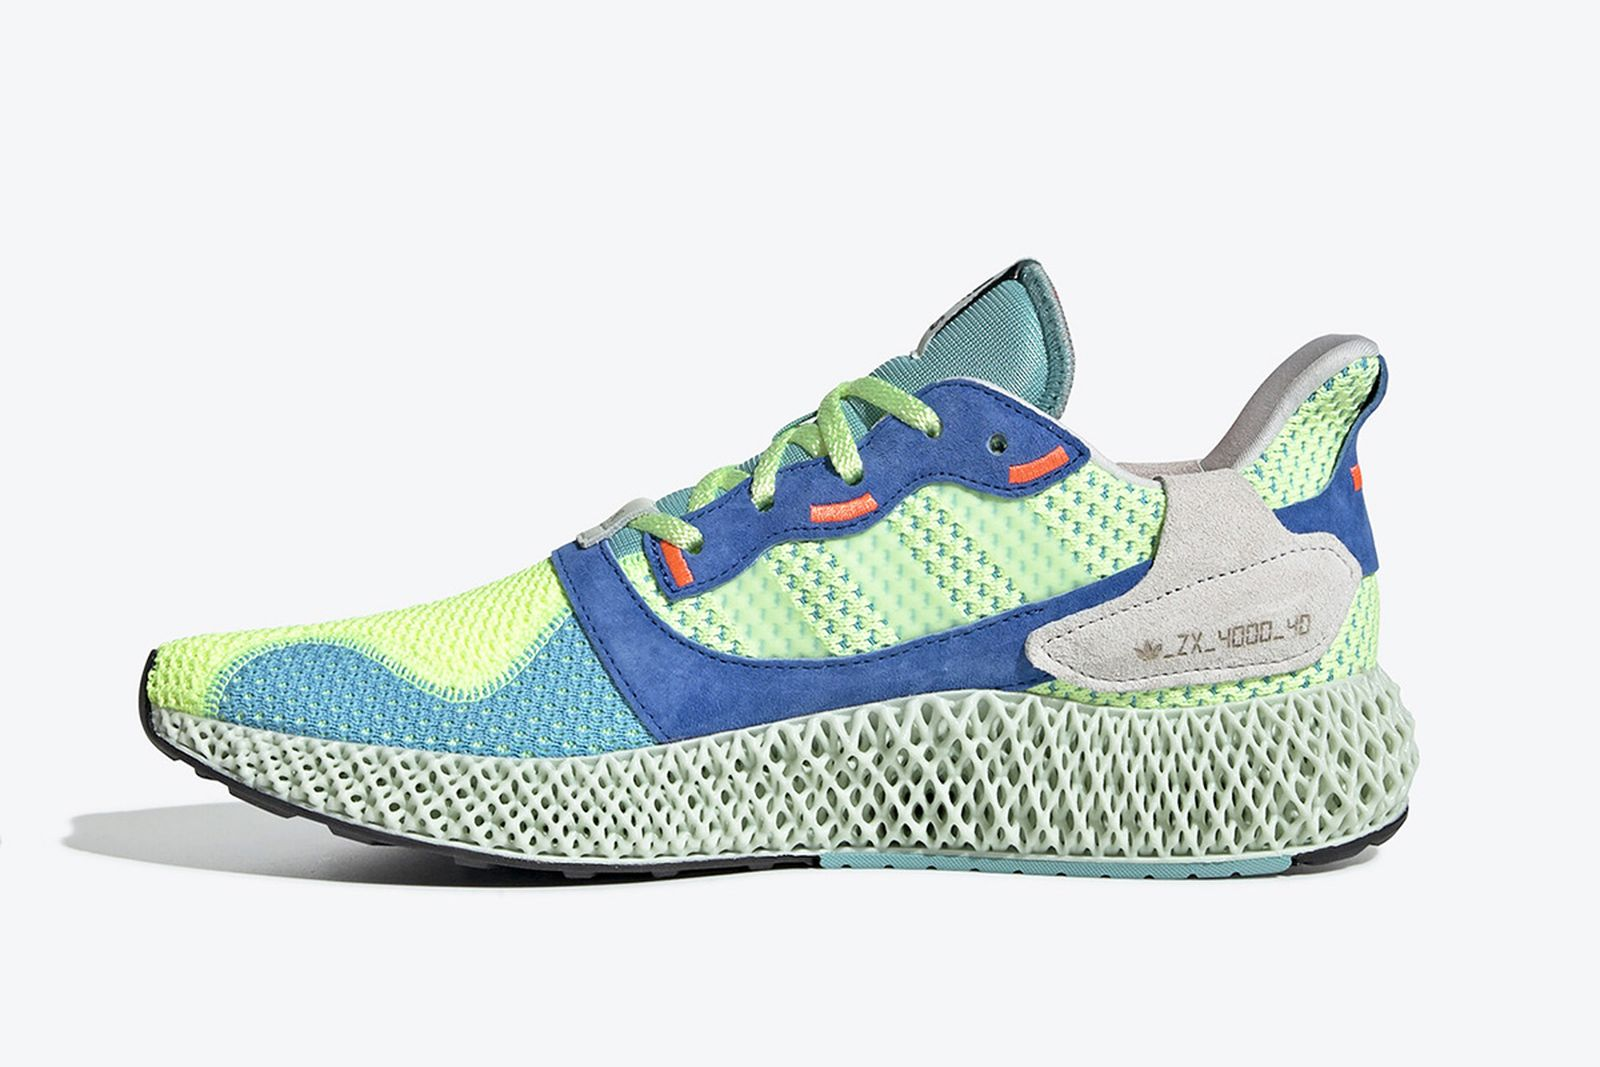 adidas originals zx 4000 4d easy mint release date price